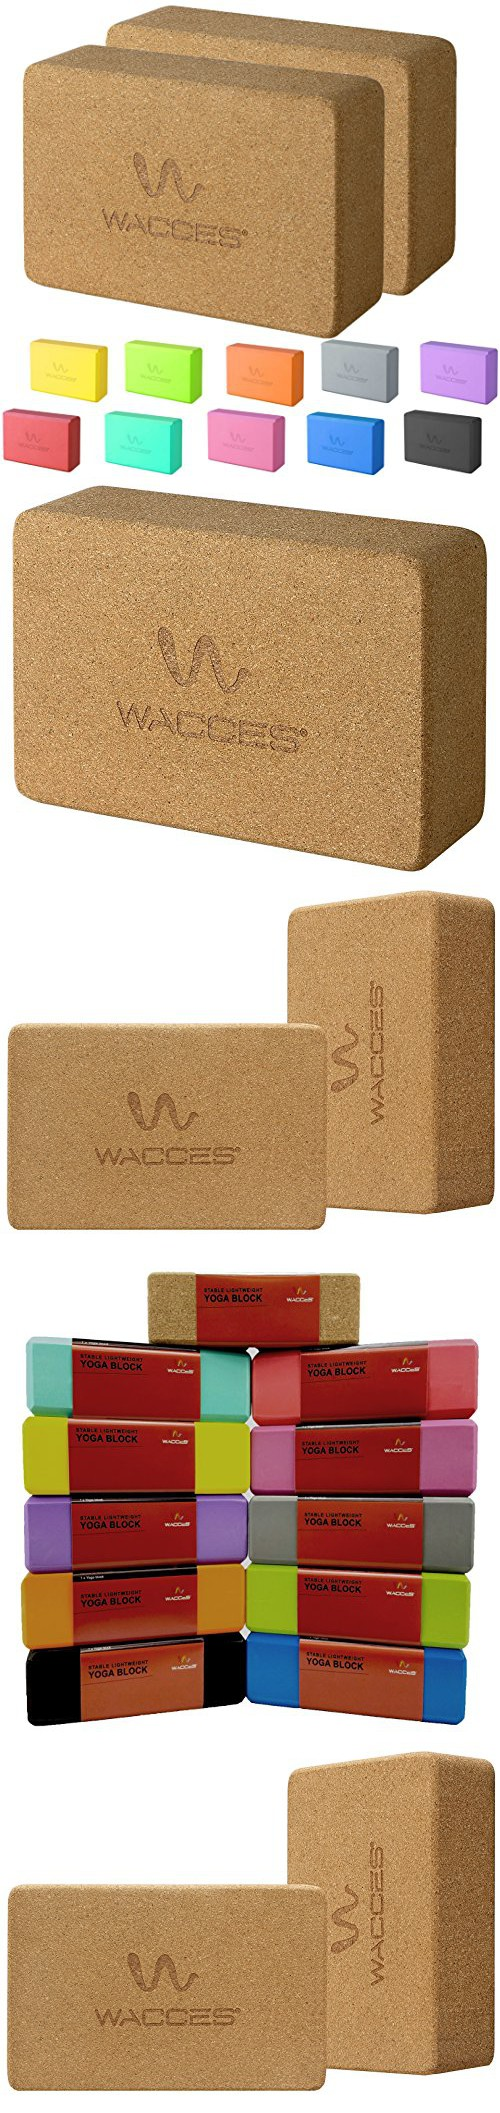 "Wacces 2 Pack Exercise Fitness Yoga Block Set Eco Friendly Cork ( 9"" x 6"" x 3"" ) - Cork"